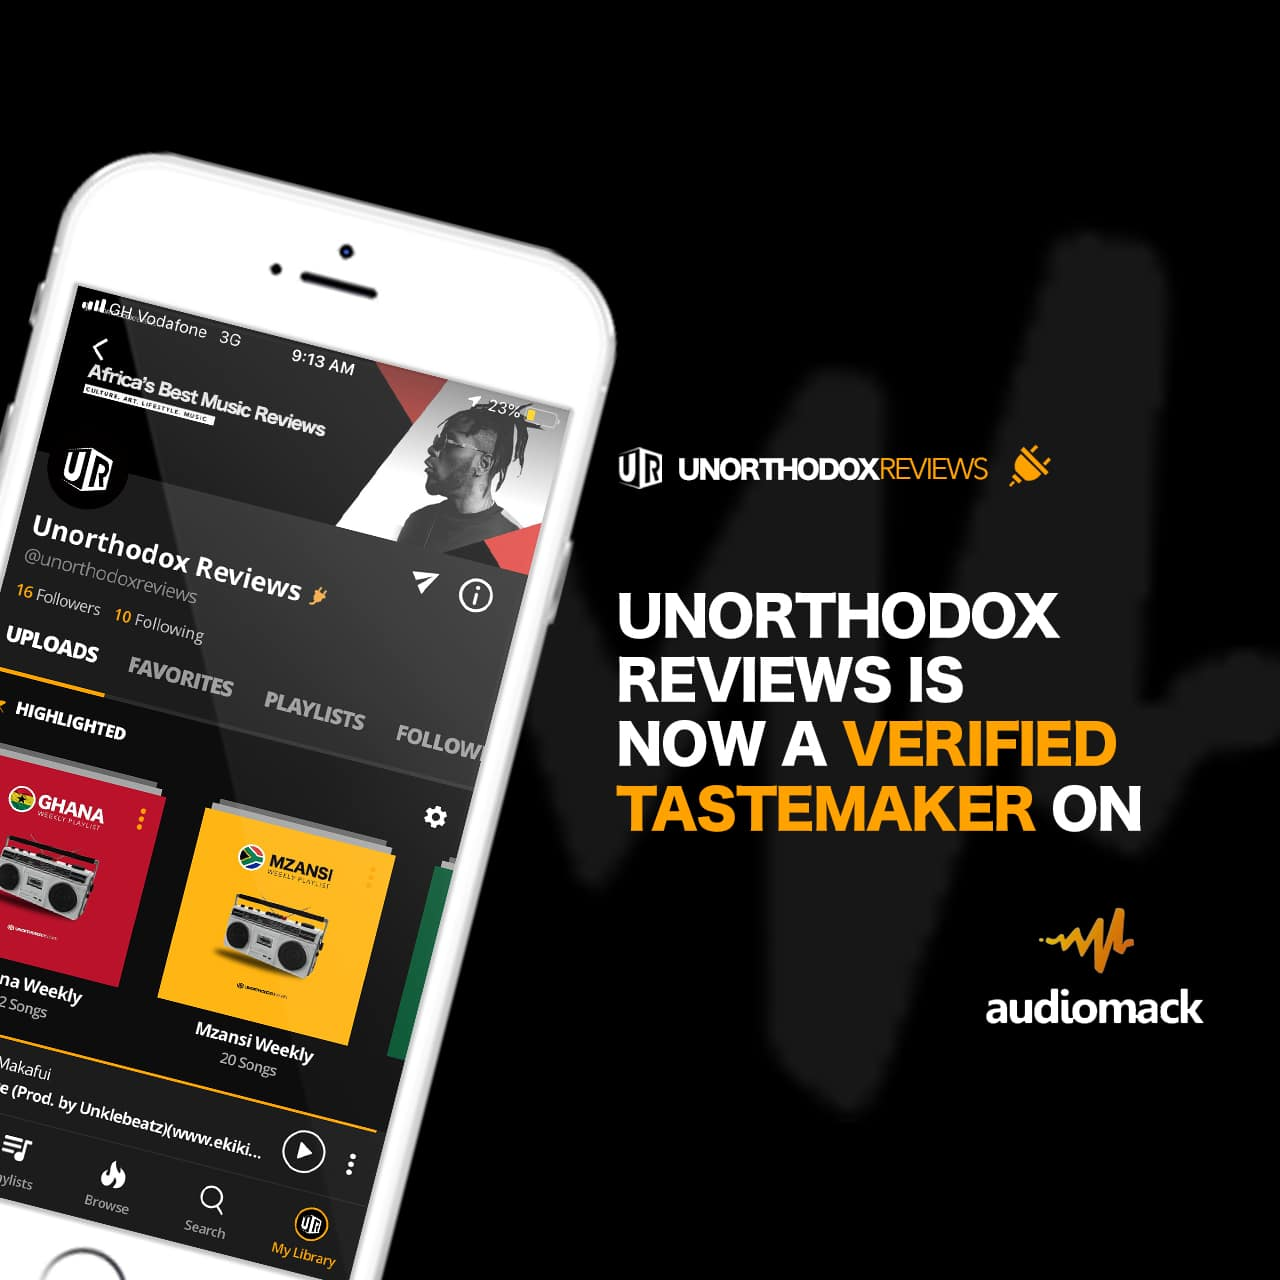 Ghanaian Online Editorial 'Unorthodox Reviews' Become Verified Tastemakers On Audiomack